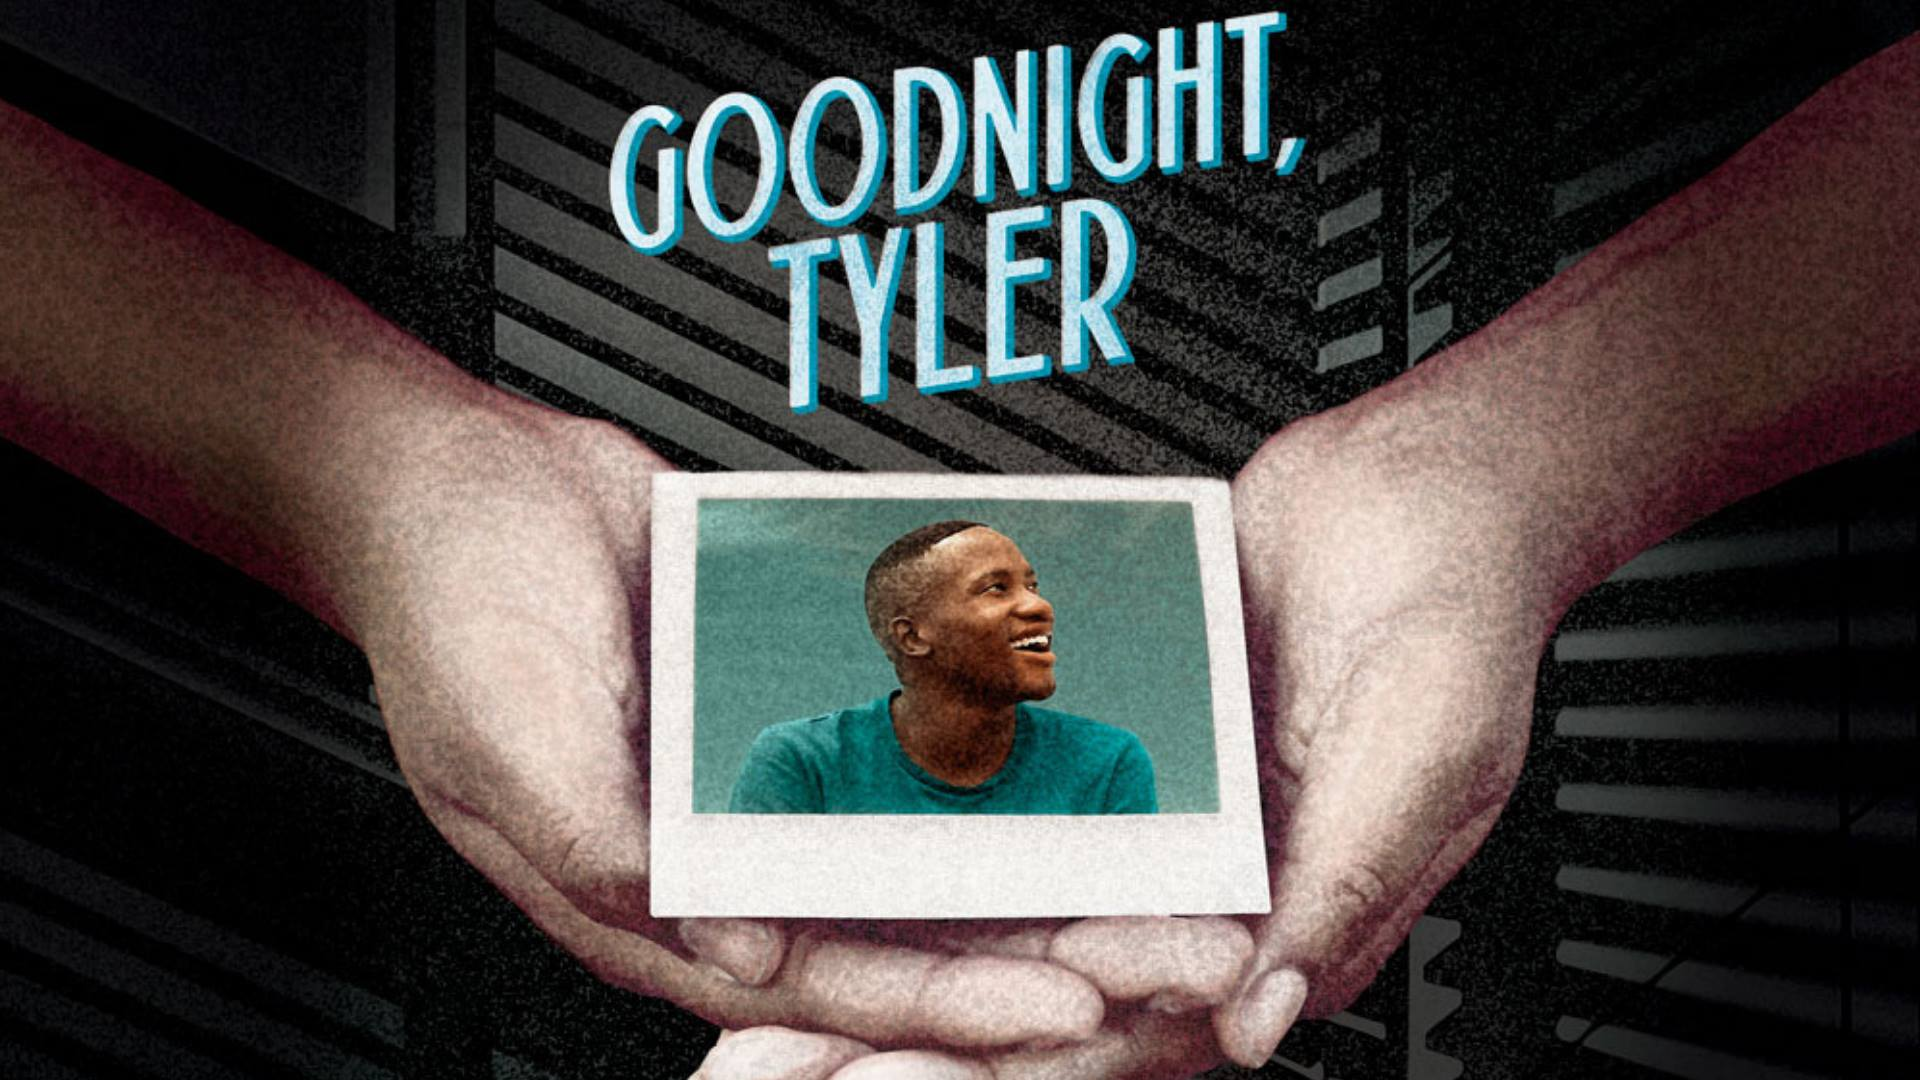 Goodnight, Tyler continues at the Alliance Theatre this week. Winner of the 2019 Kendeda National Playwriting Competition.